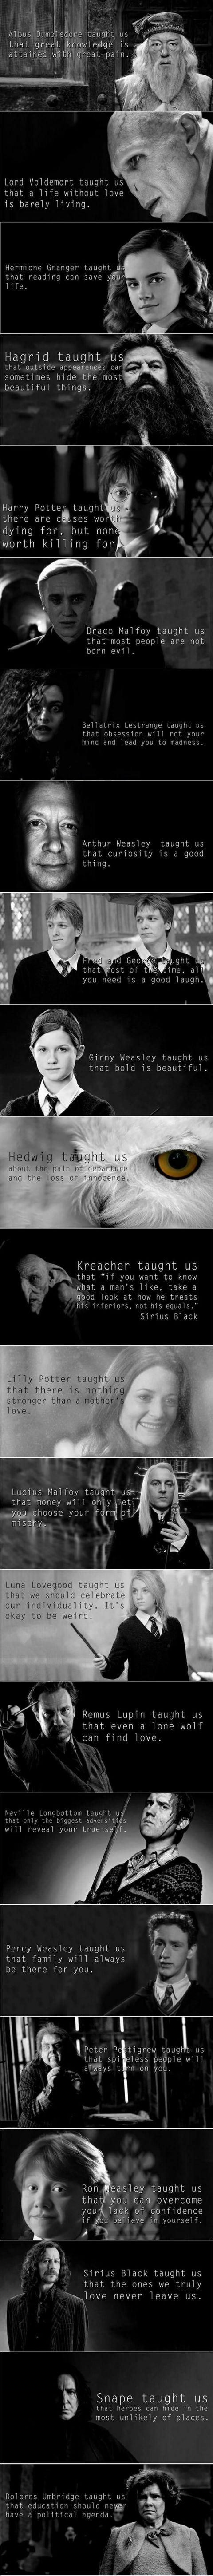 This post taught us the even the greatest potter heads cannot spell lily potter.